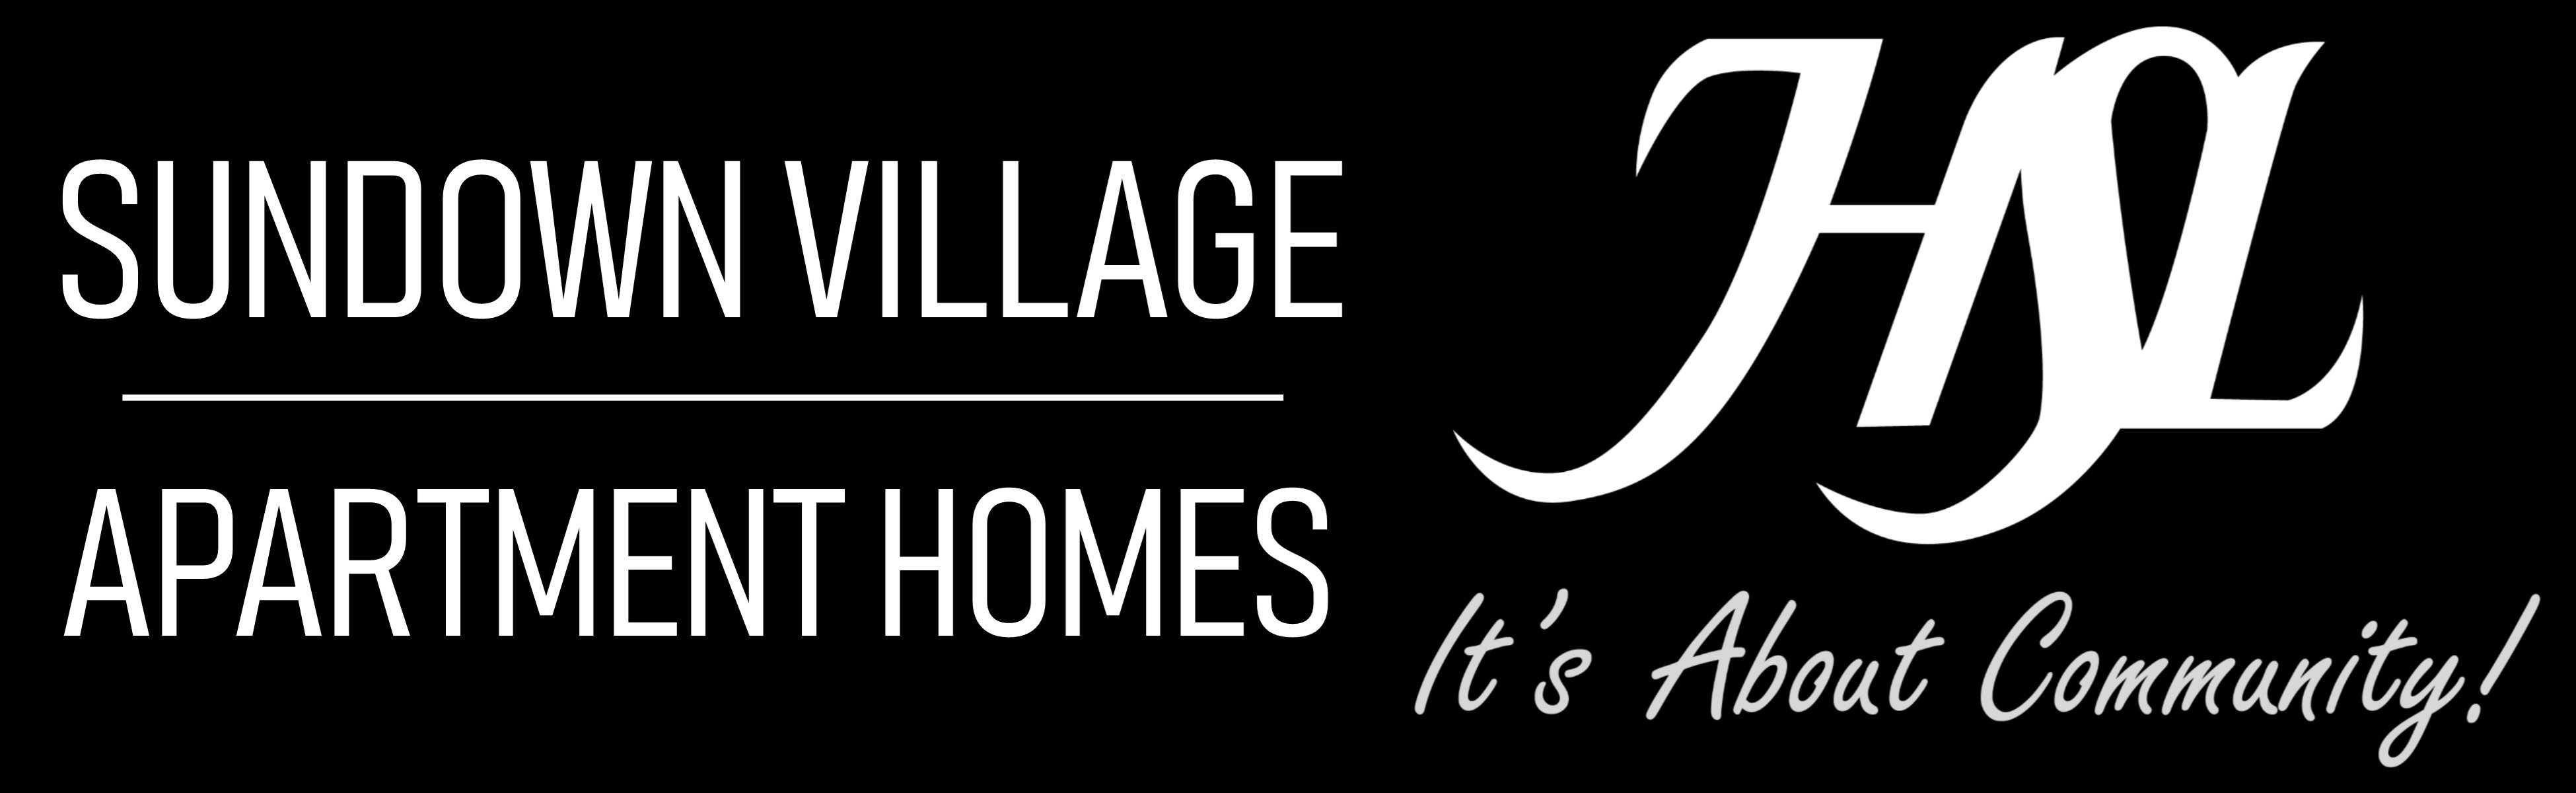 Sundown Village Logo